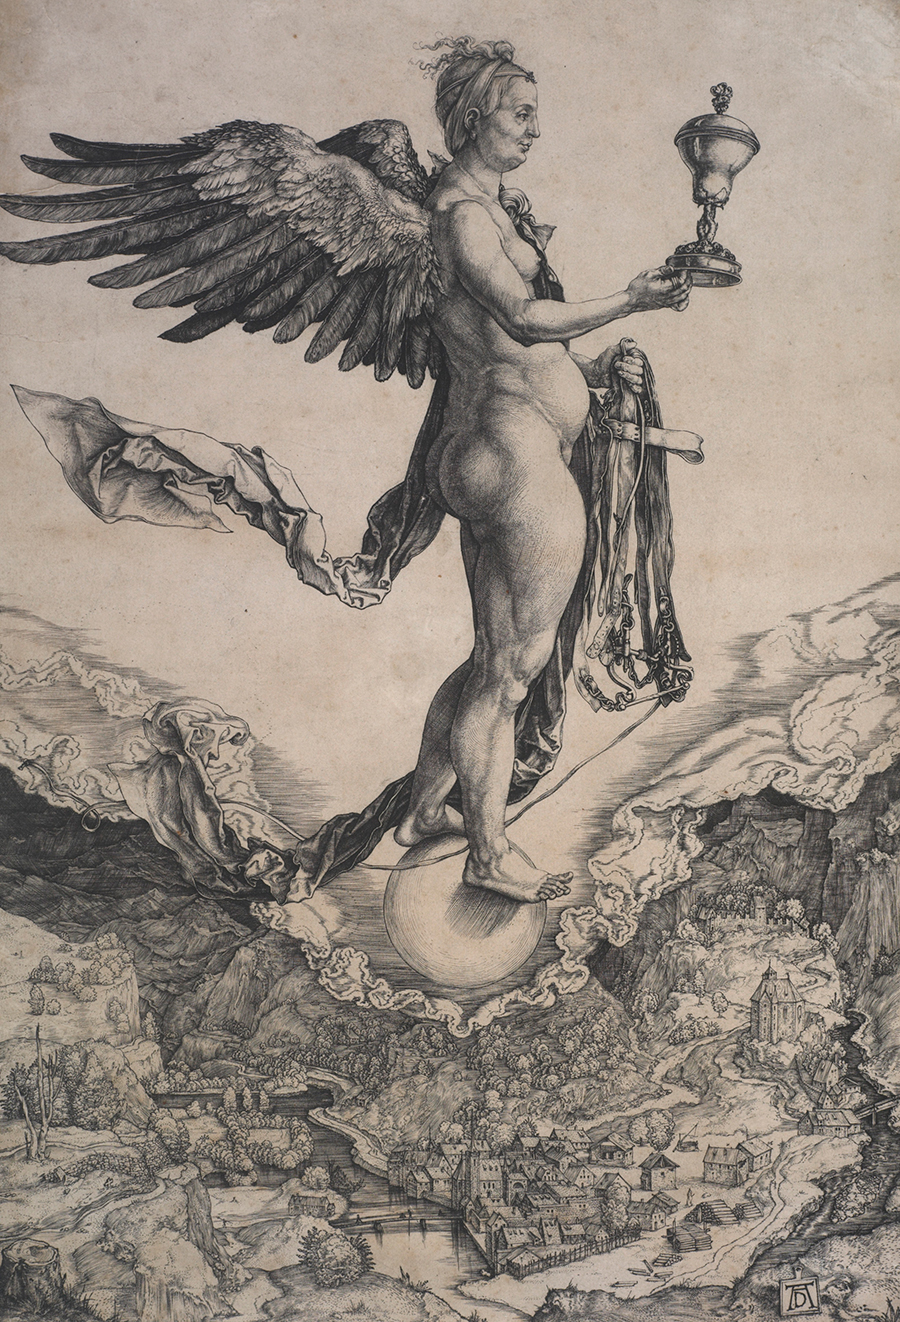 Print of a powerful, middle-aged female figure, nude and winged, straddles a globe